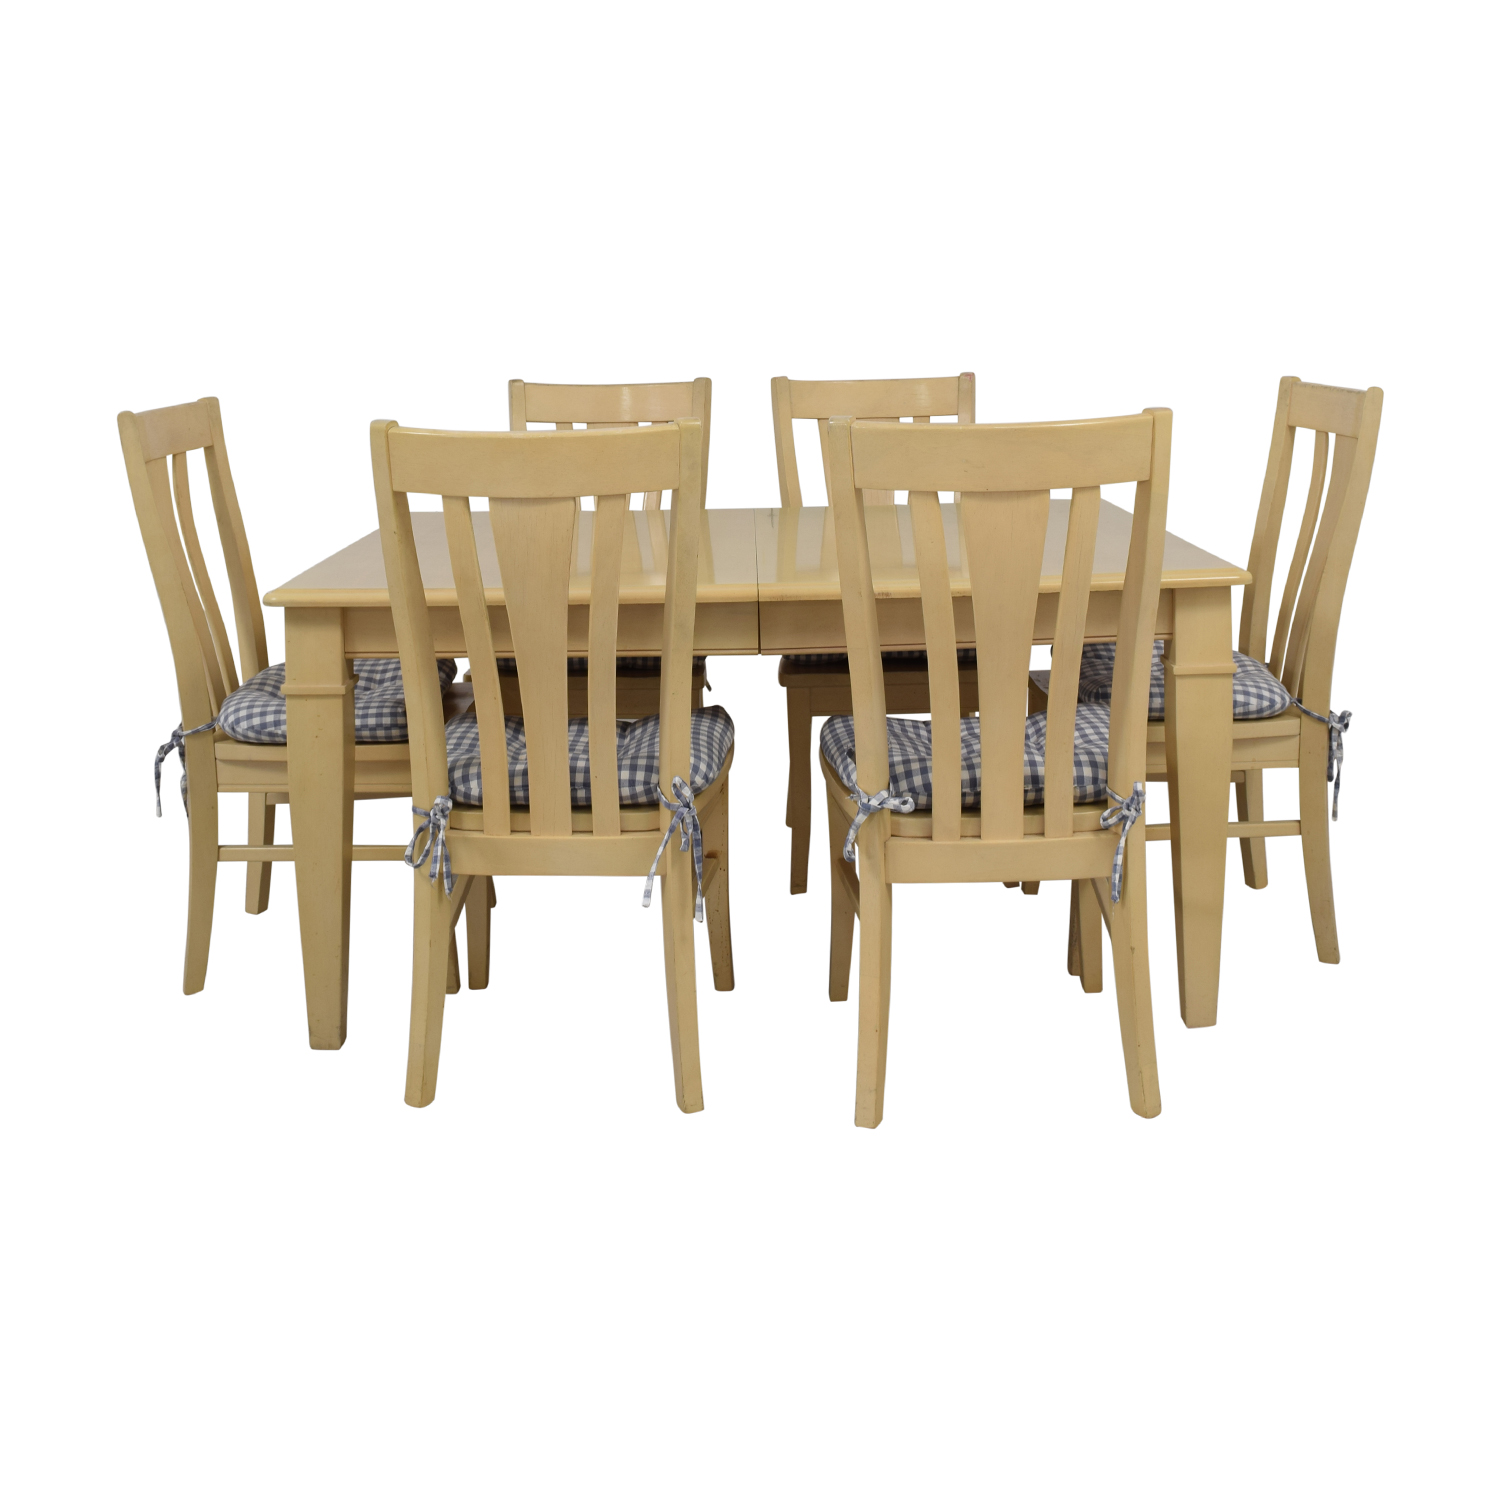 Swell 69 Off Bassett Furniture Bassett Furniture Blonde Wood Dining Set With Seat Cushions Tables Download Free Architecture Designs Lukepmadebymaigaardcom